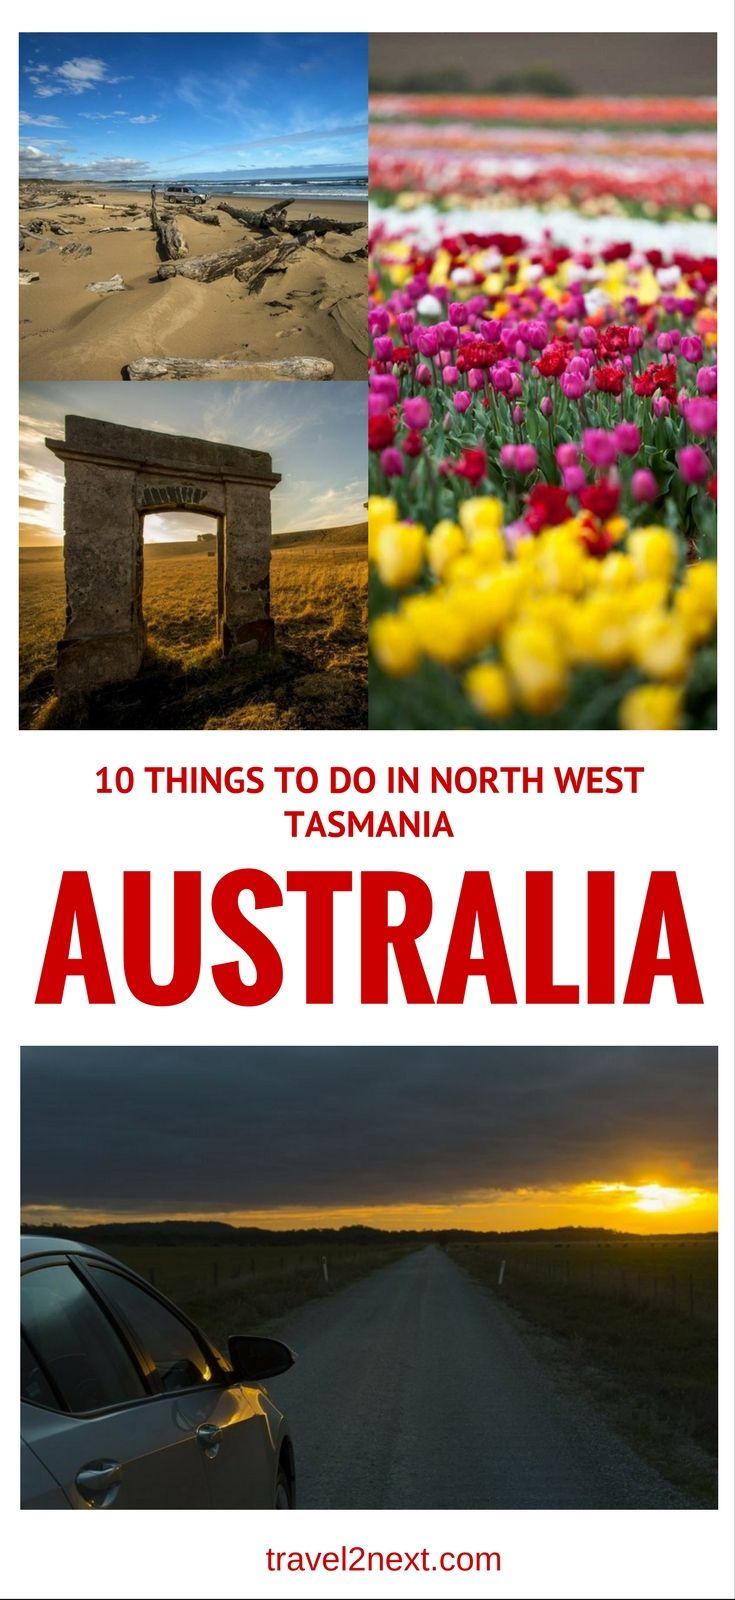 10 things to do in north west Tasmania. Only 10? Tasmania's north-west region, is diverse and captivating.